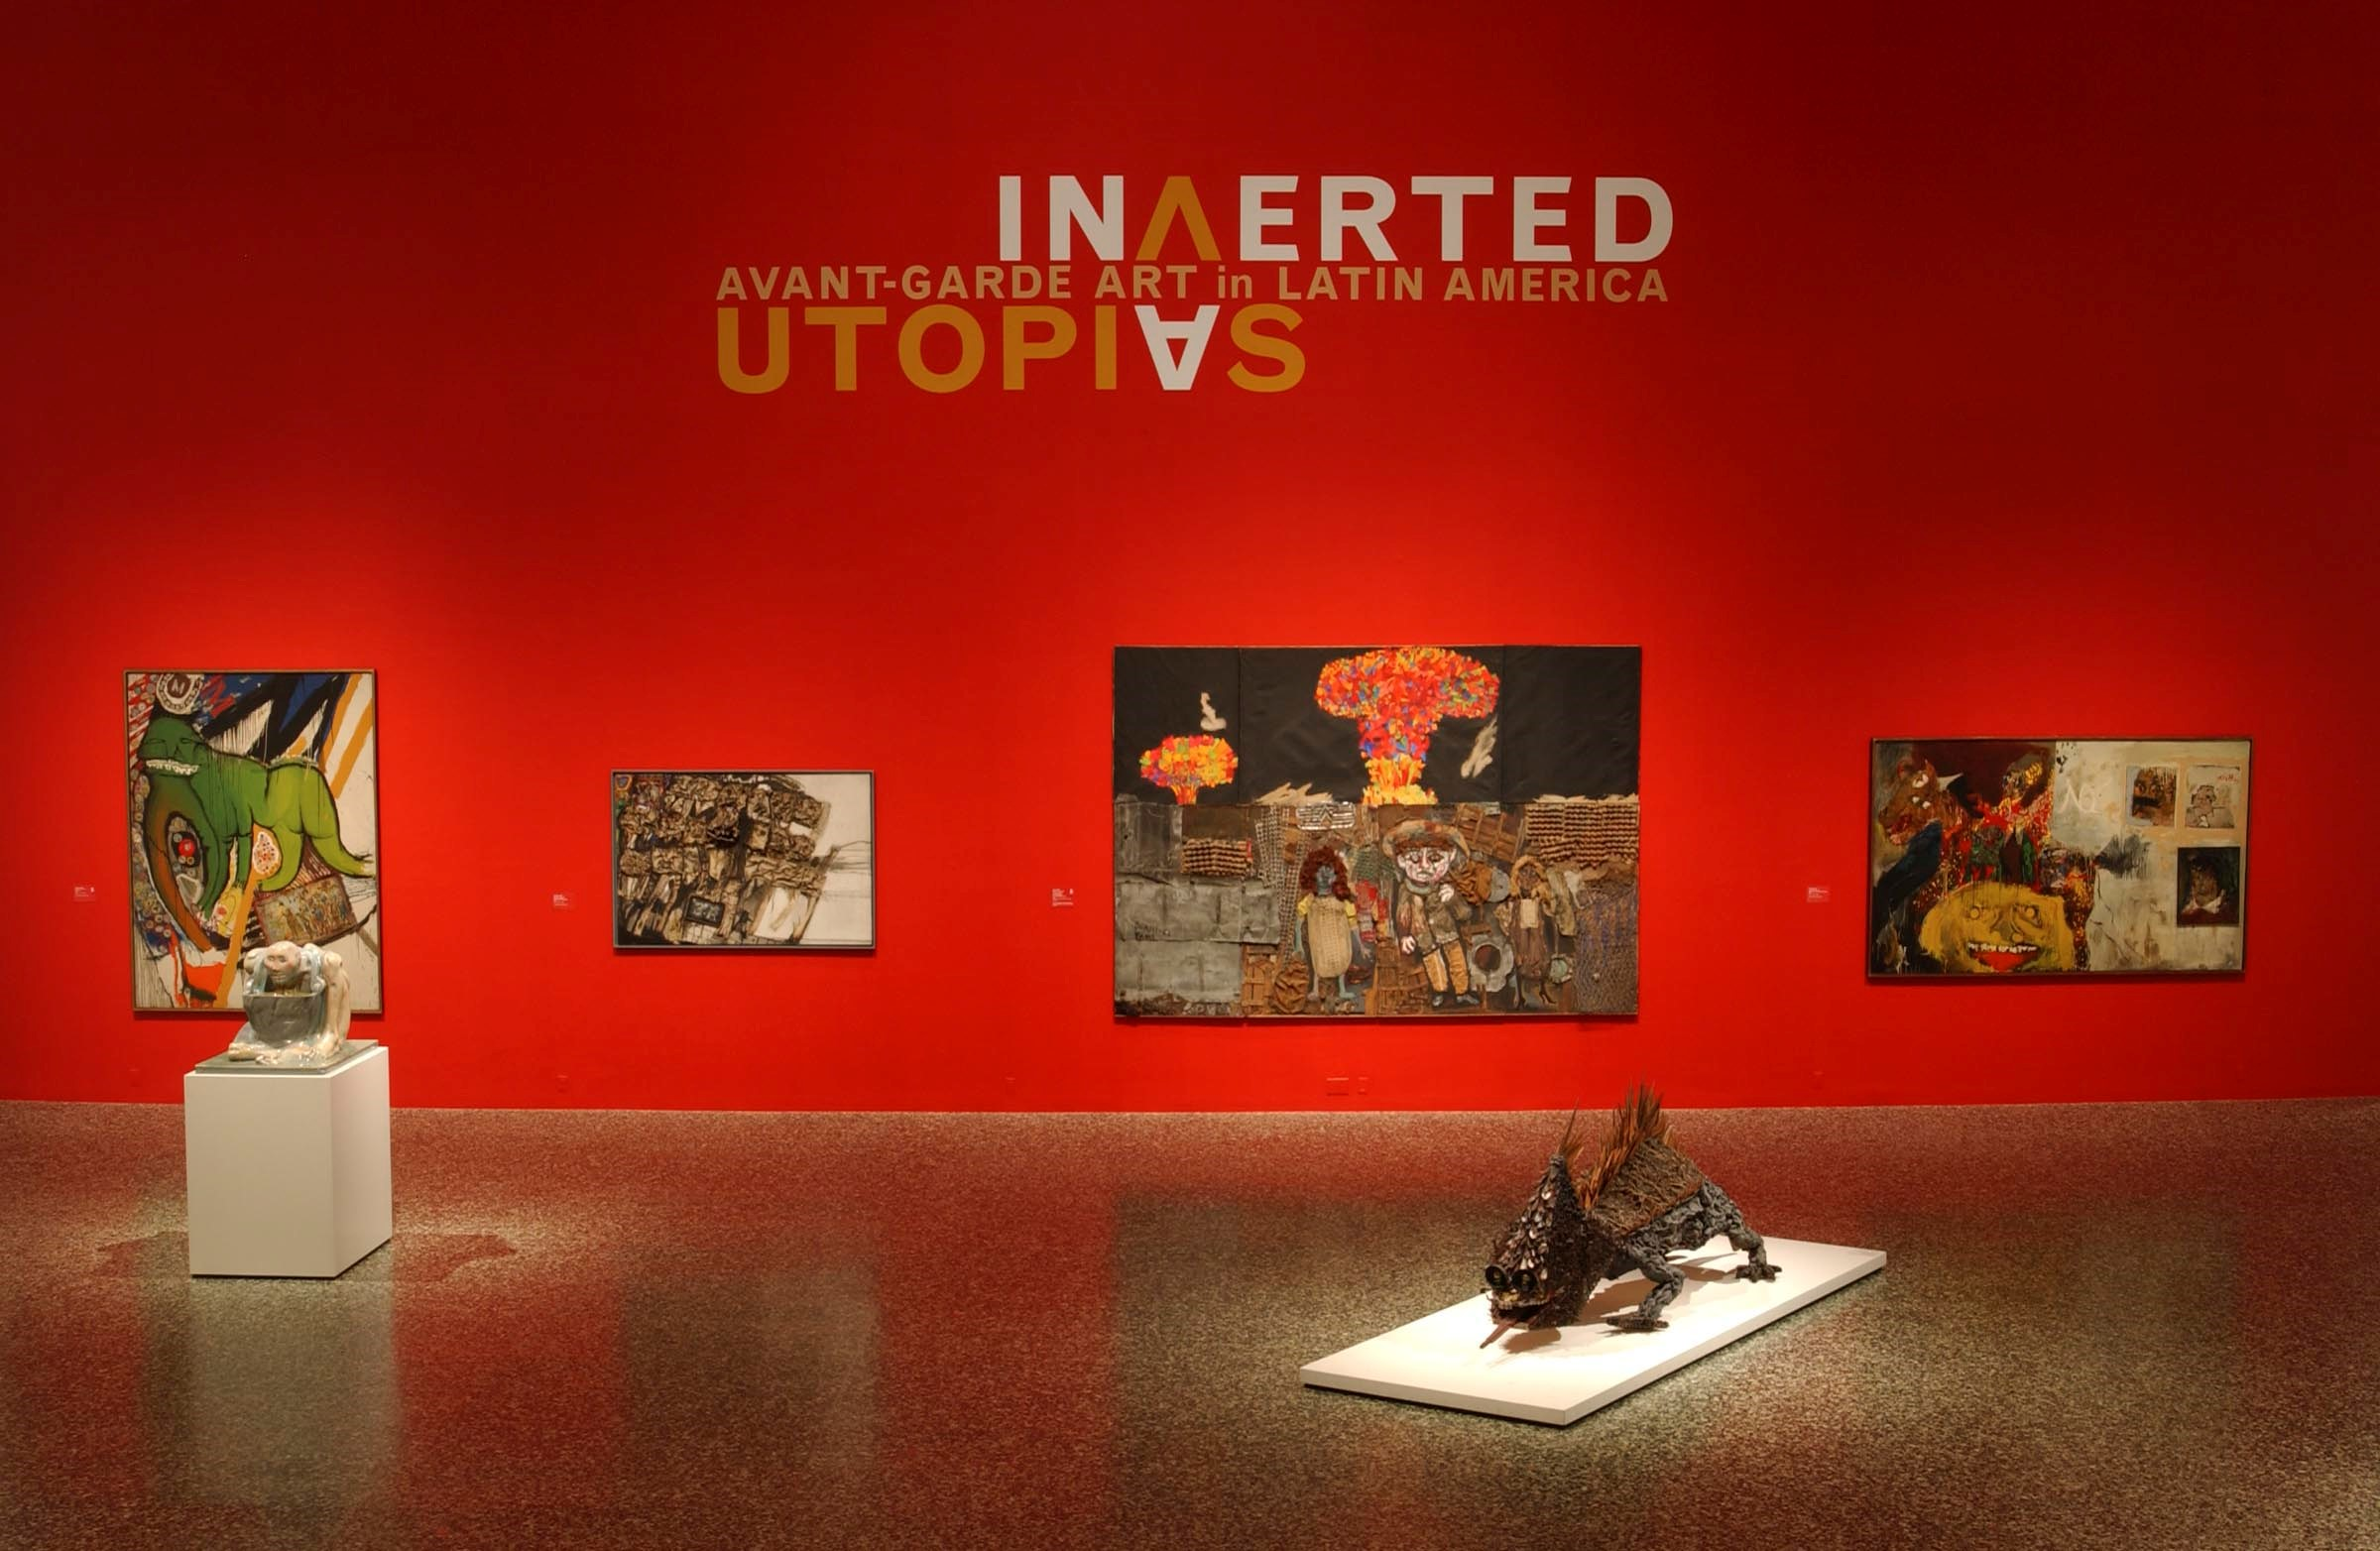 Inverted Utopias: Avant-Garde Art in Latin America